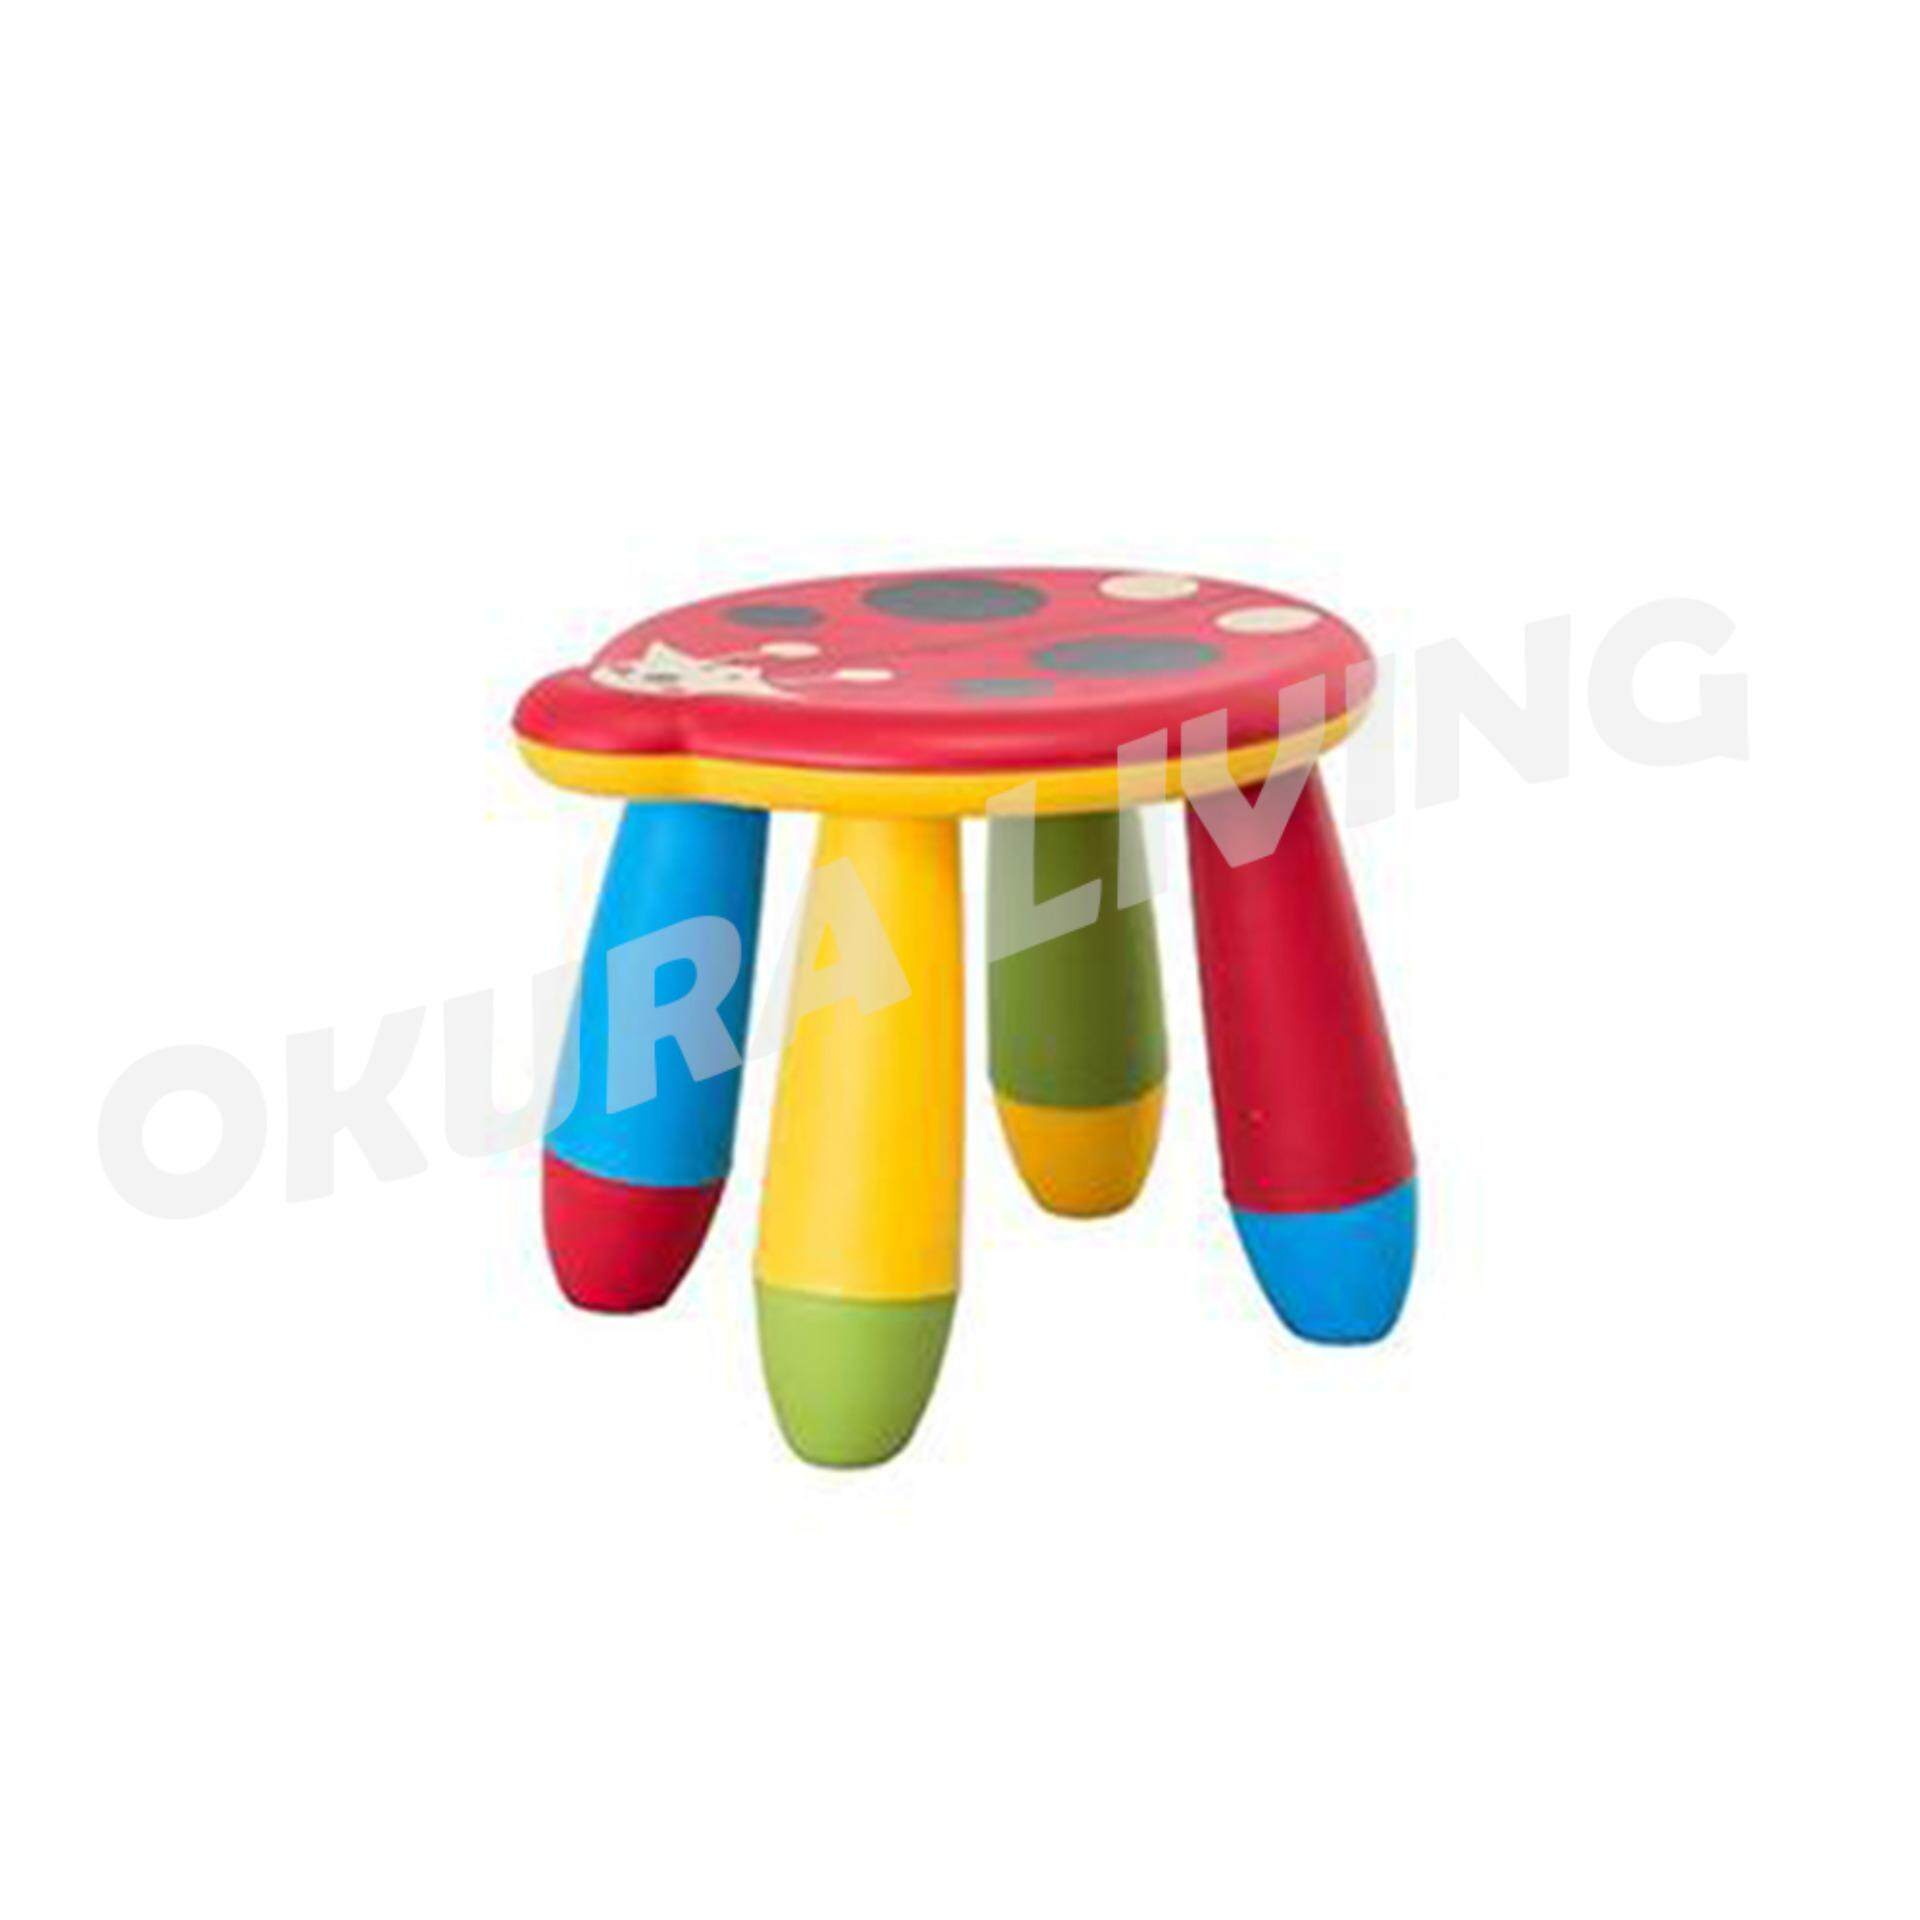 OKURA Ladybird Children/Kid Chair Indoor, Outdoor